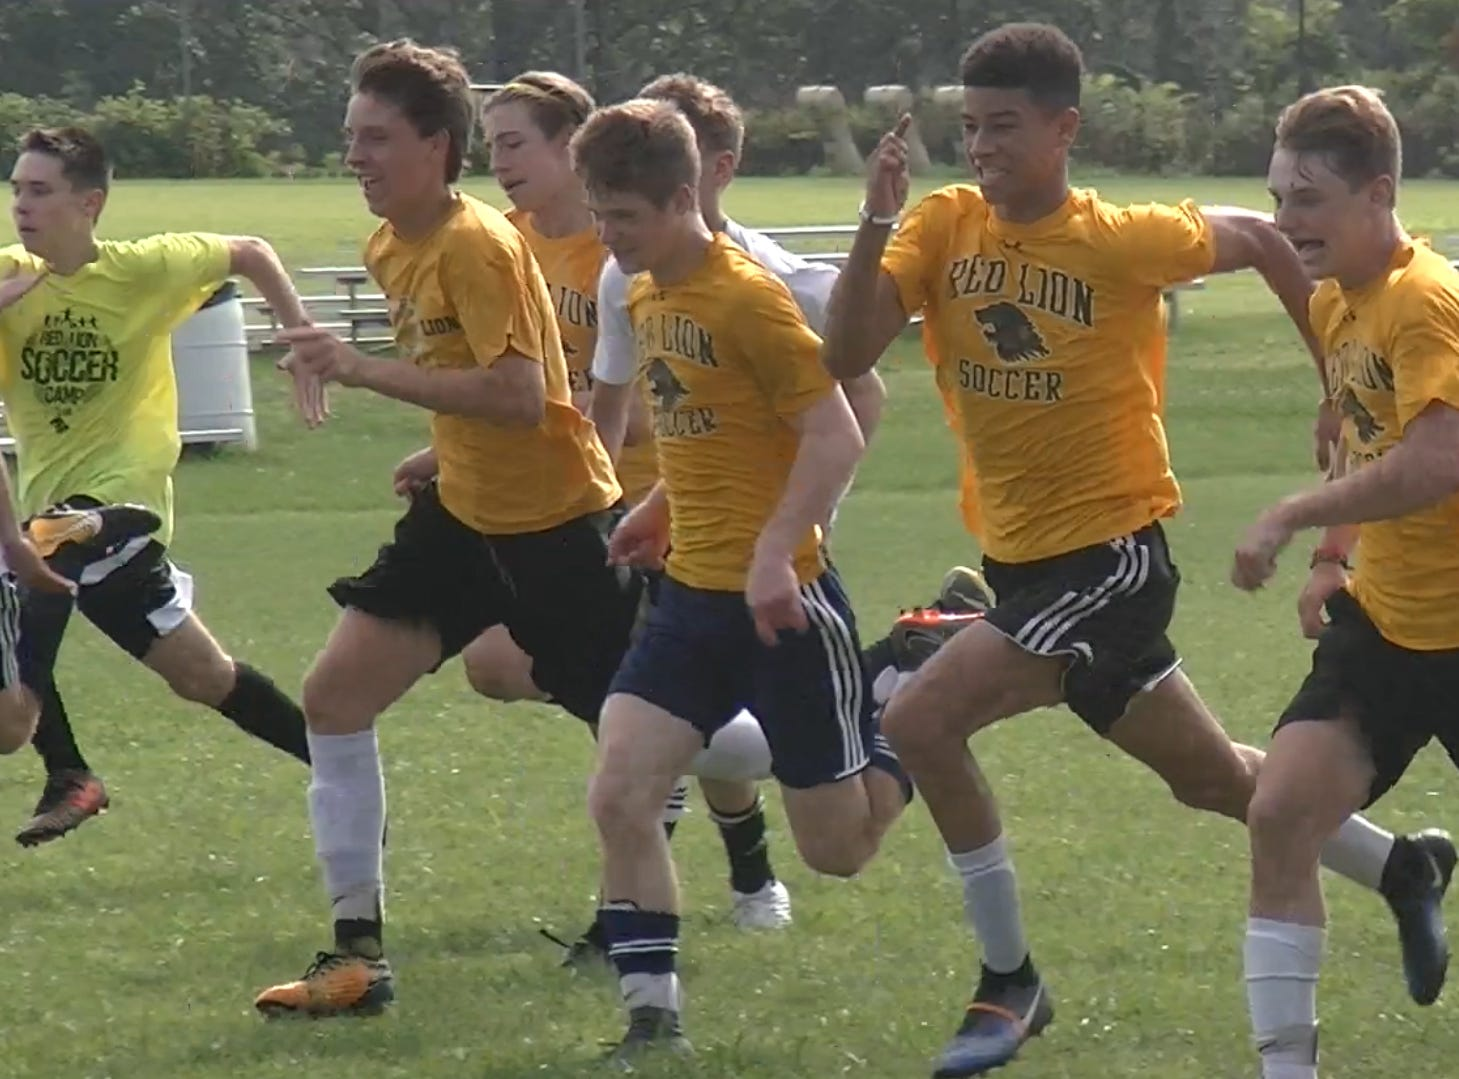 Members of Red Lion boys' soccer team complete wind sprints at the end of the team's first practice Monday, Aug. 13, 2018.